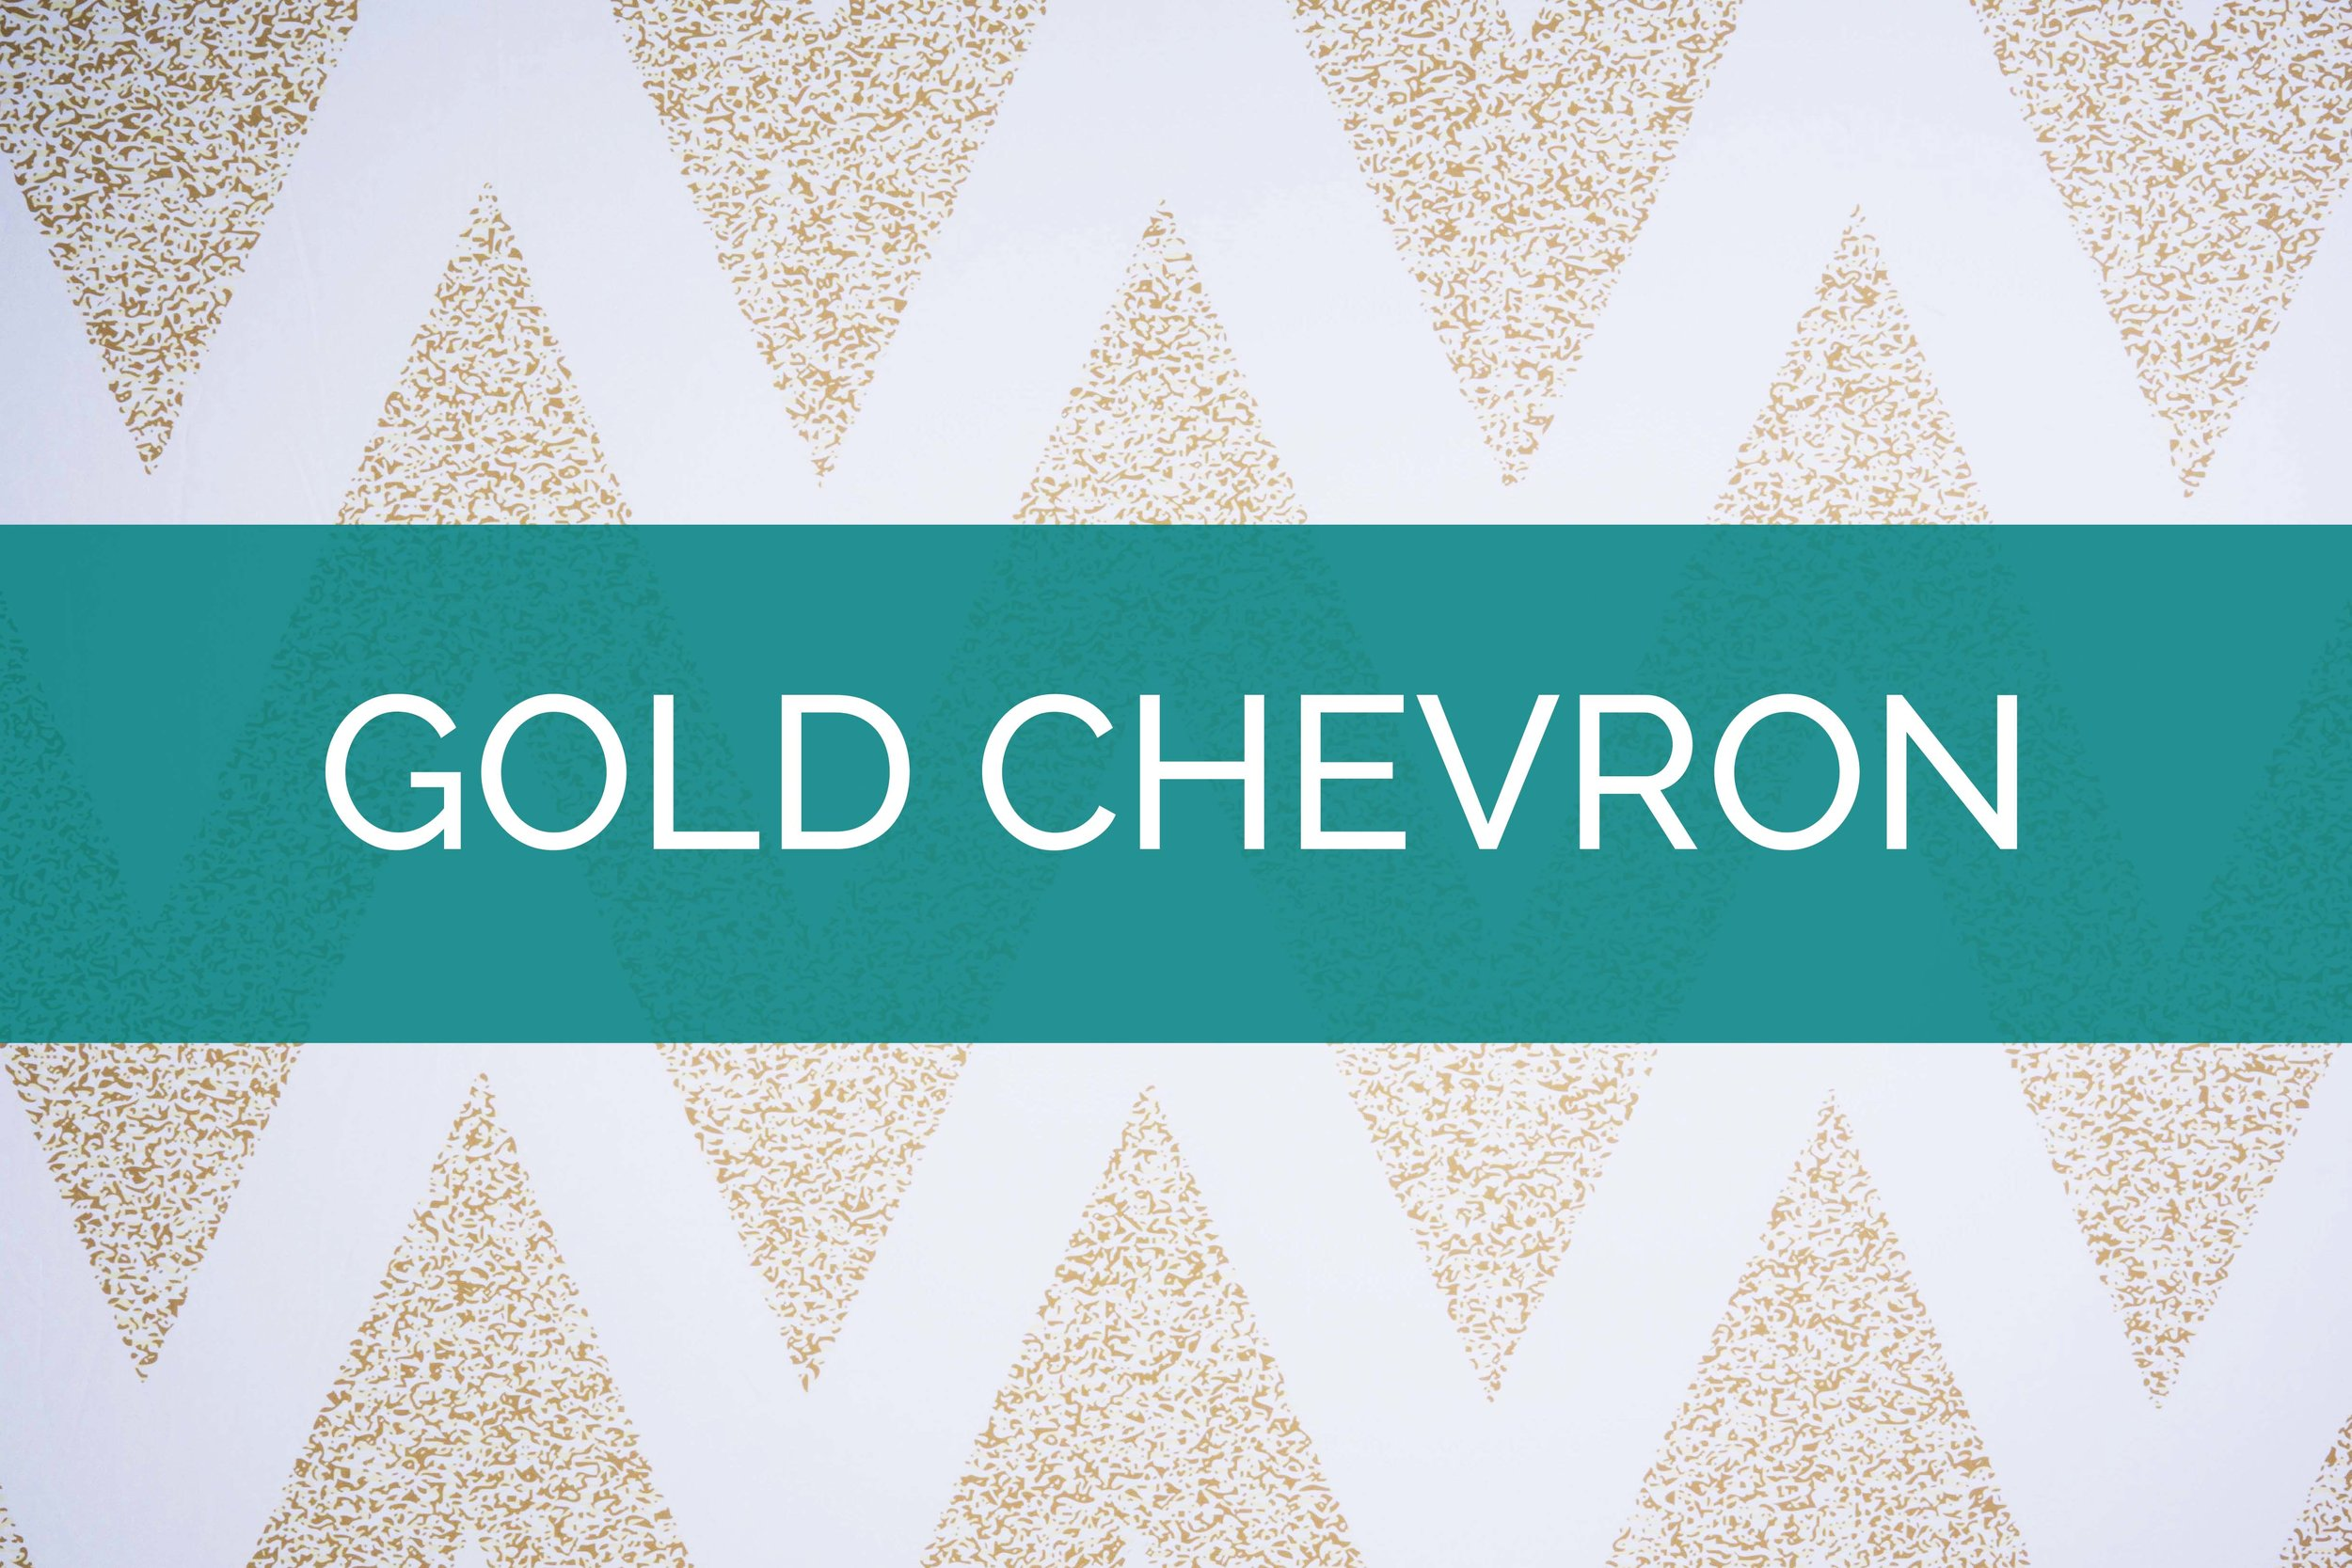 photo booth hire sydney backdrops gold chevron 2.jpg